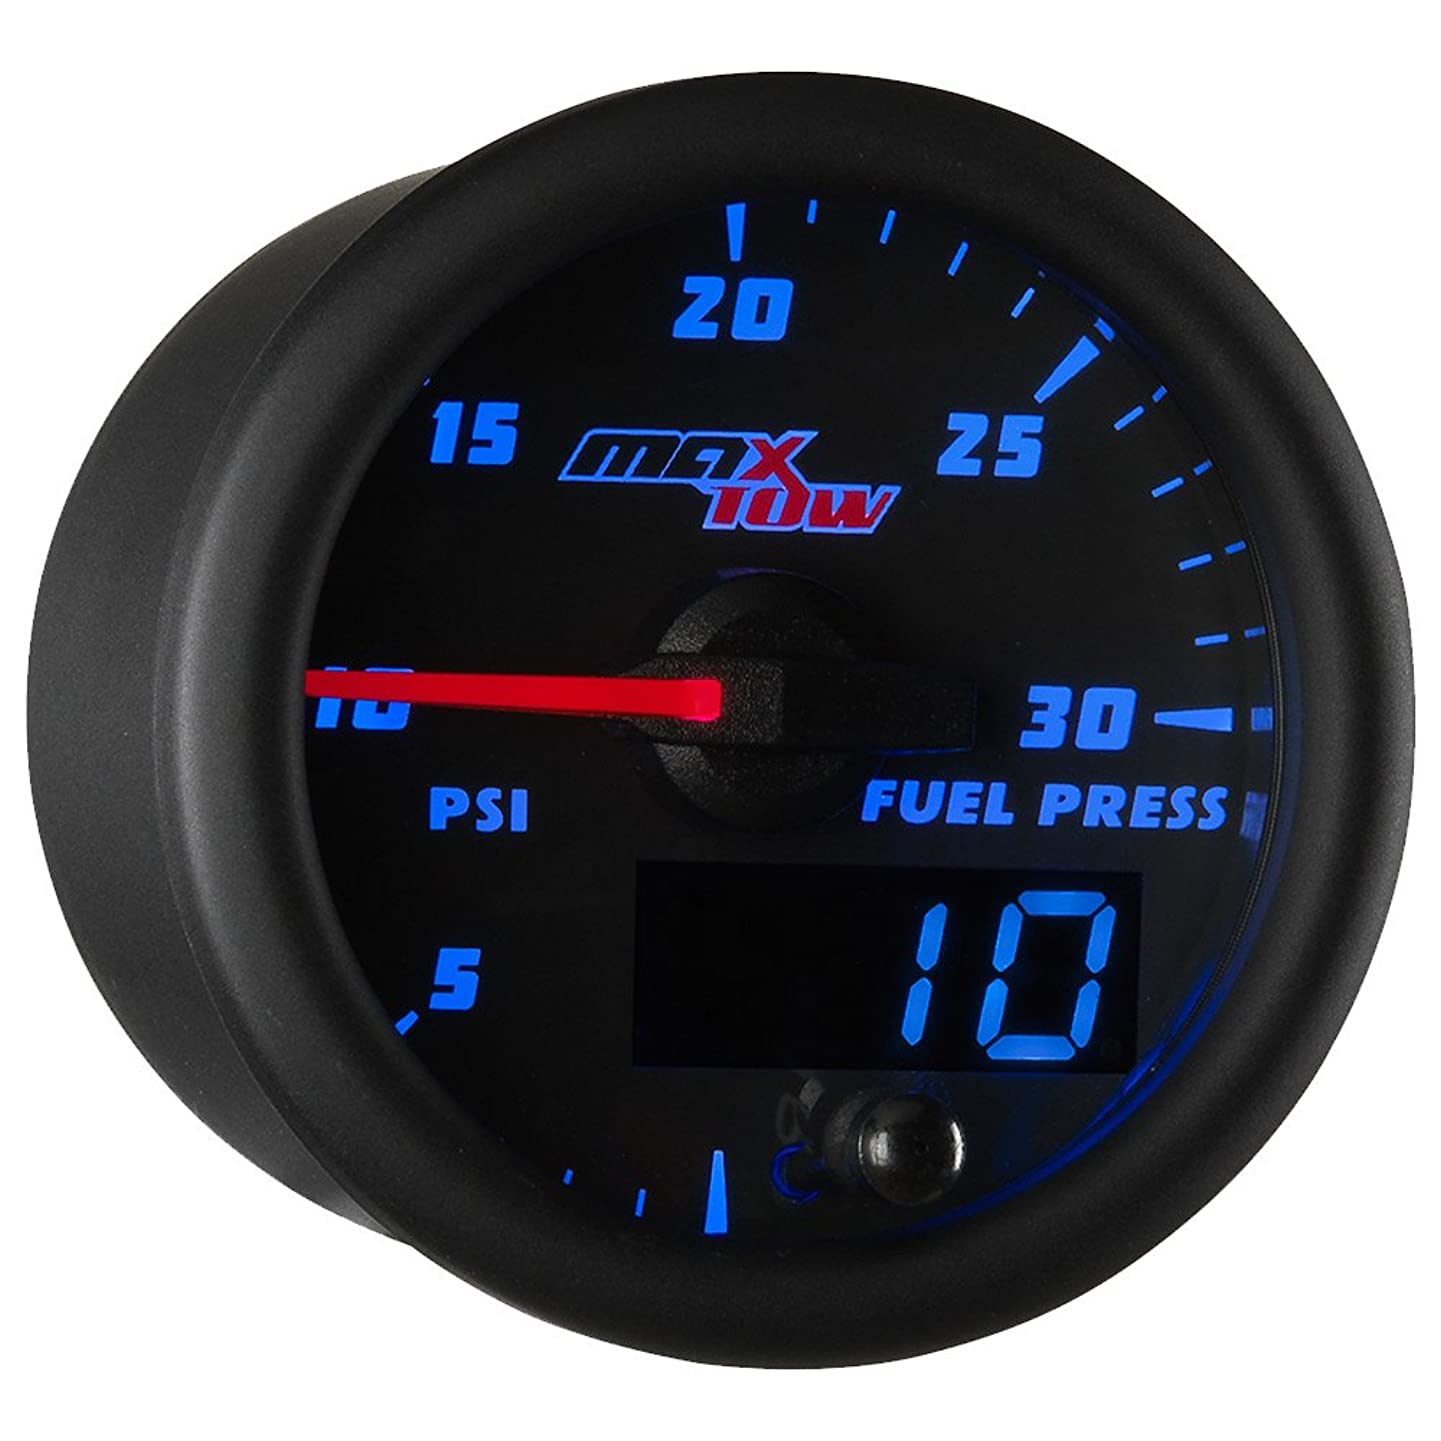 MaxTow Double Vision 30 PSI Fuel Pressure Gauge Kit - Includes Electronic Sensor - Black Gauge Face - Blue LED Illuminated Dial - Analog & Digital Readouts - for Diesel Trucks - 2-1/16